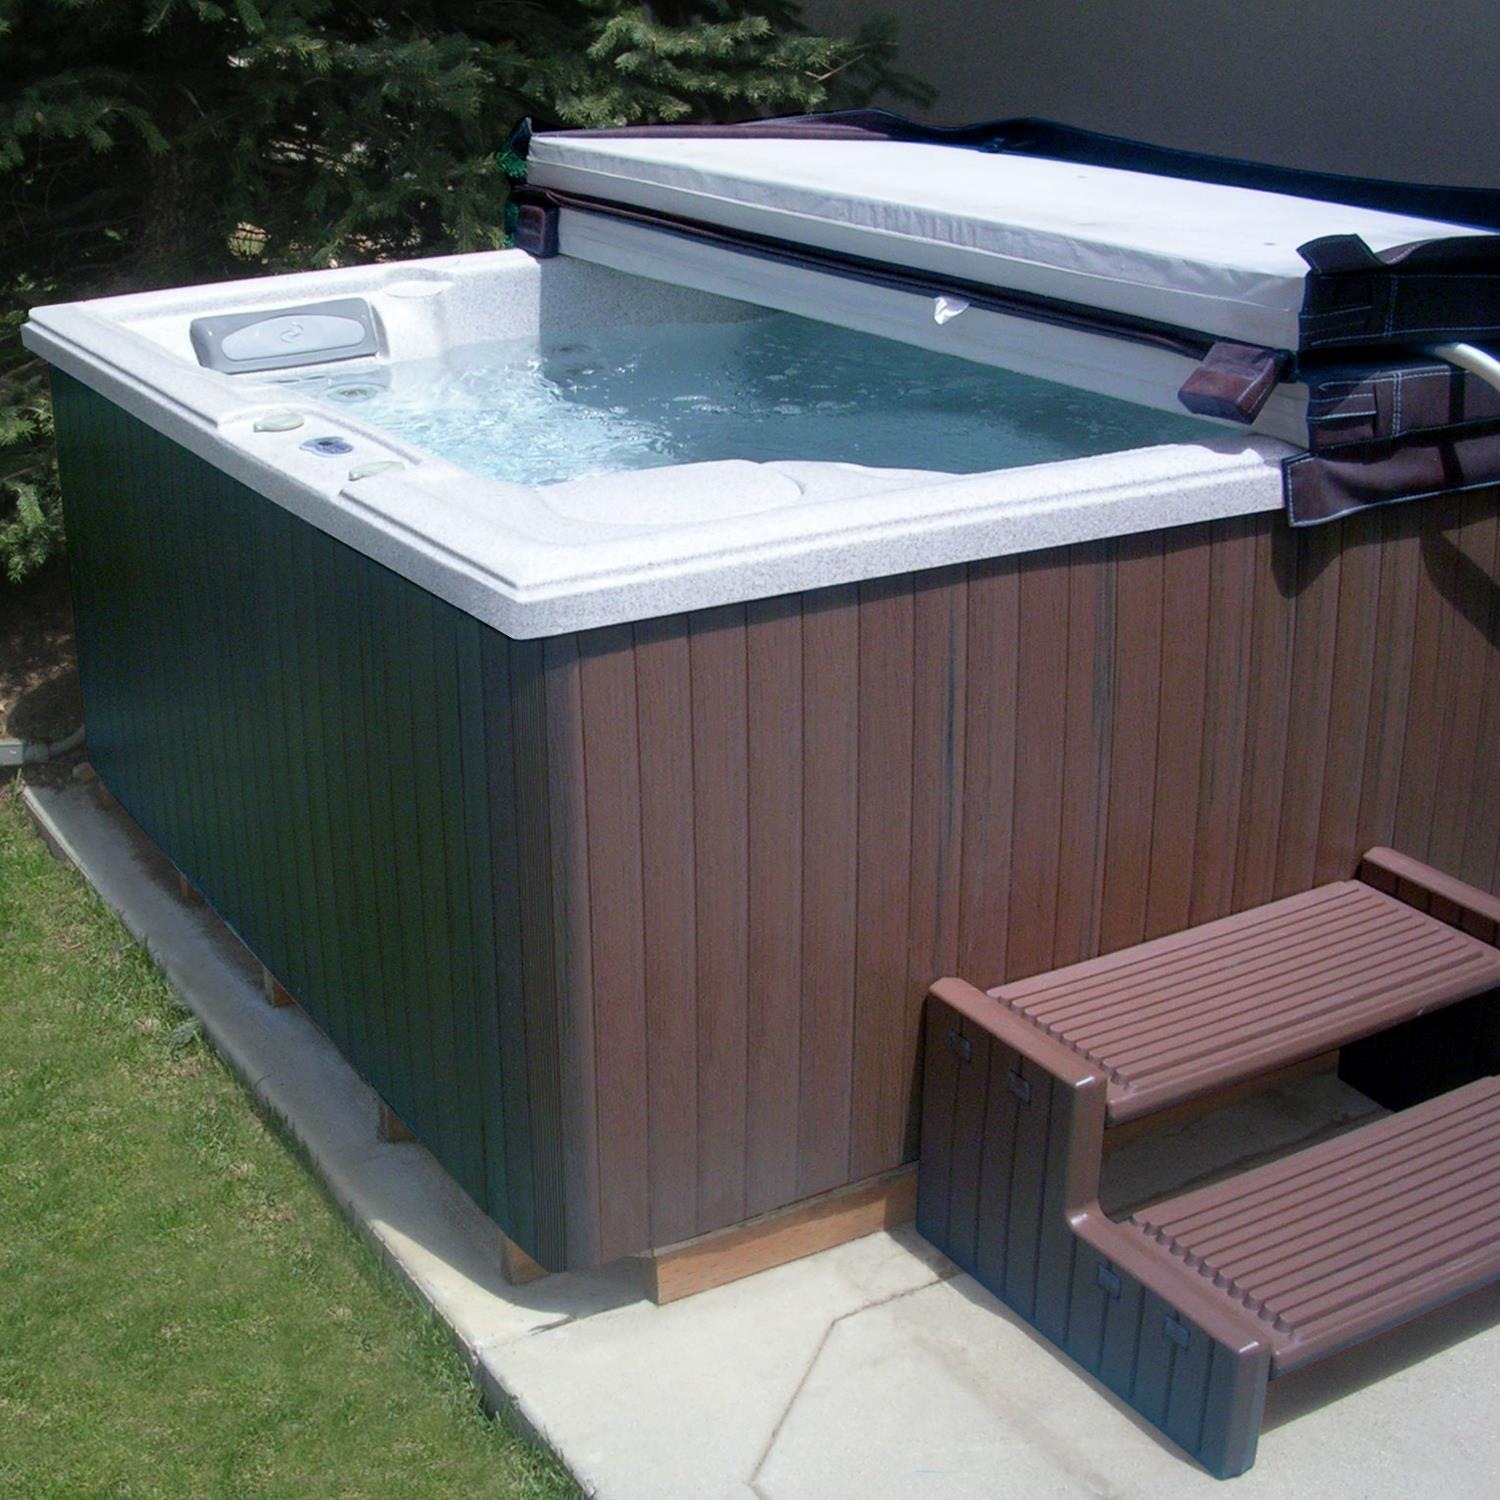 Coffee Shop Furniture Hot Tub: Furniture, Home Goods, Appliances, Athletic Gear, Fitness